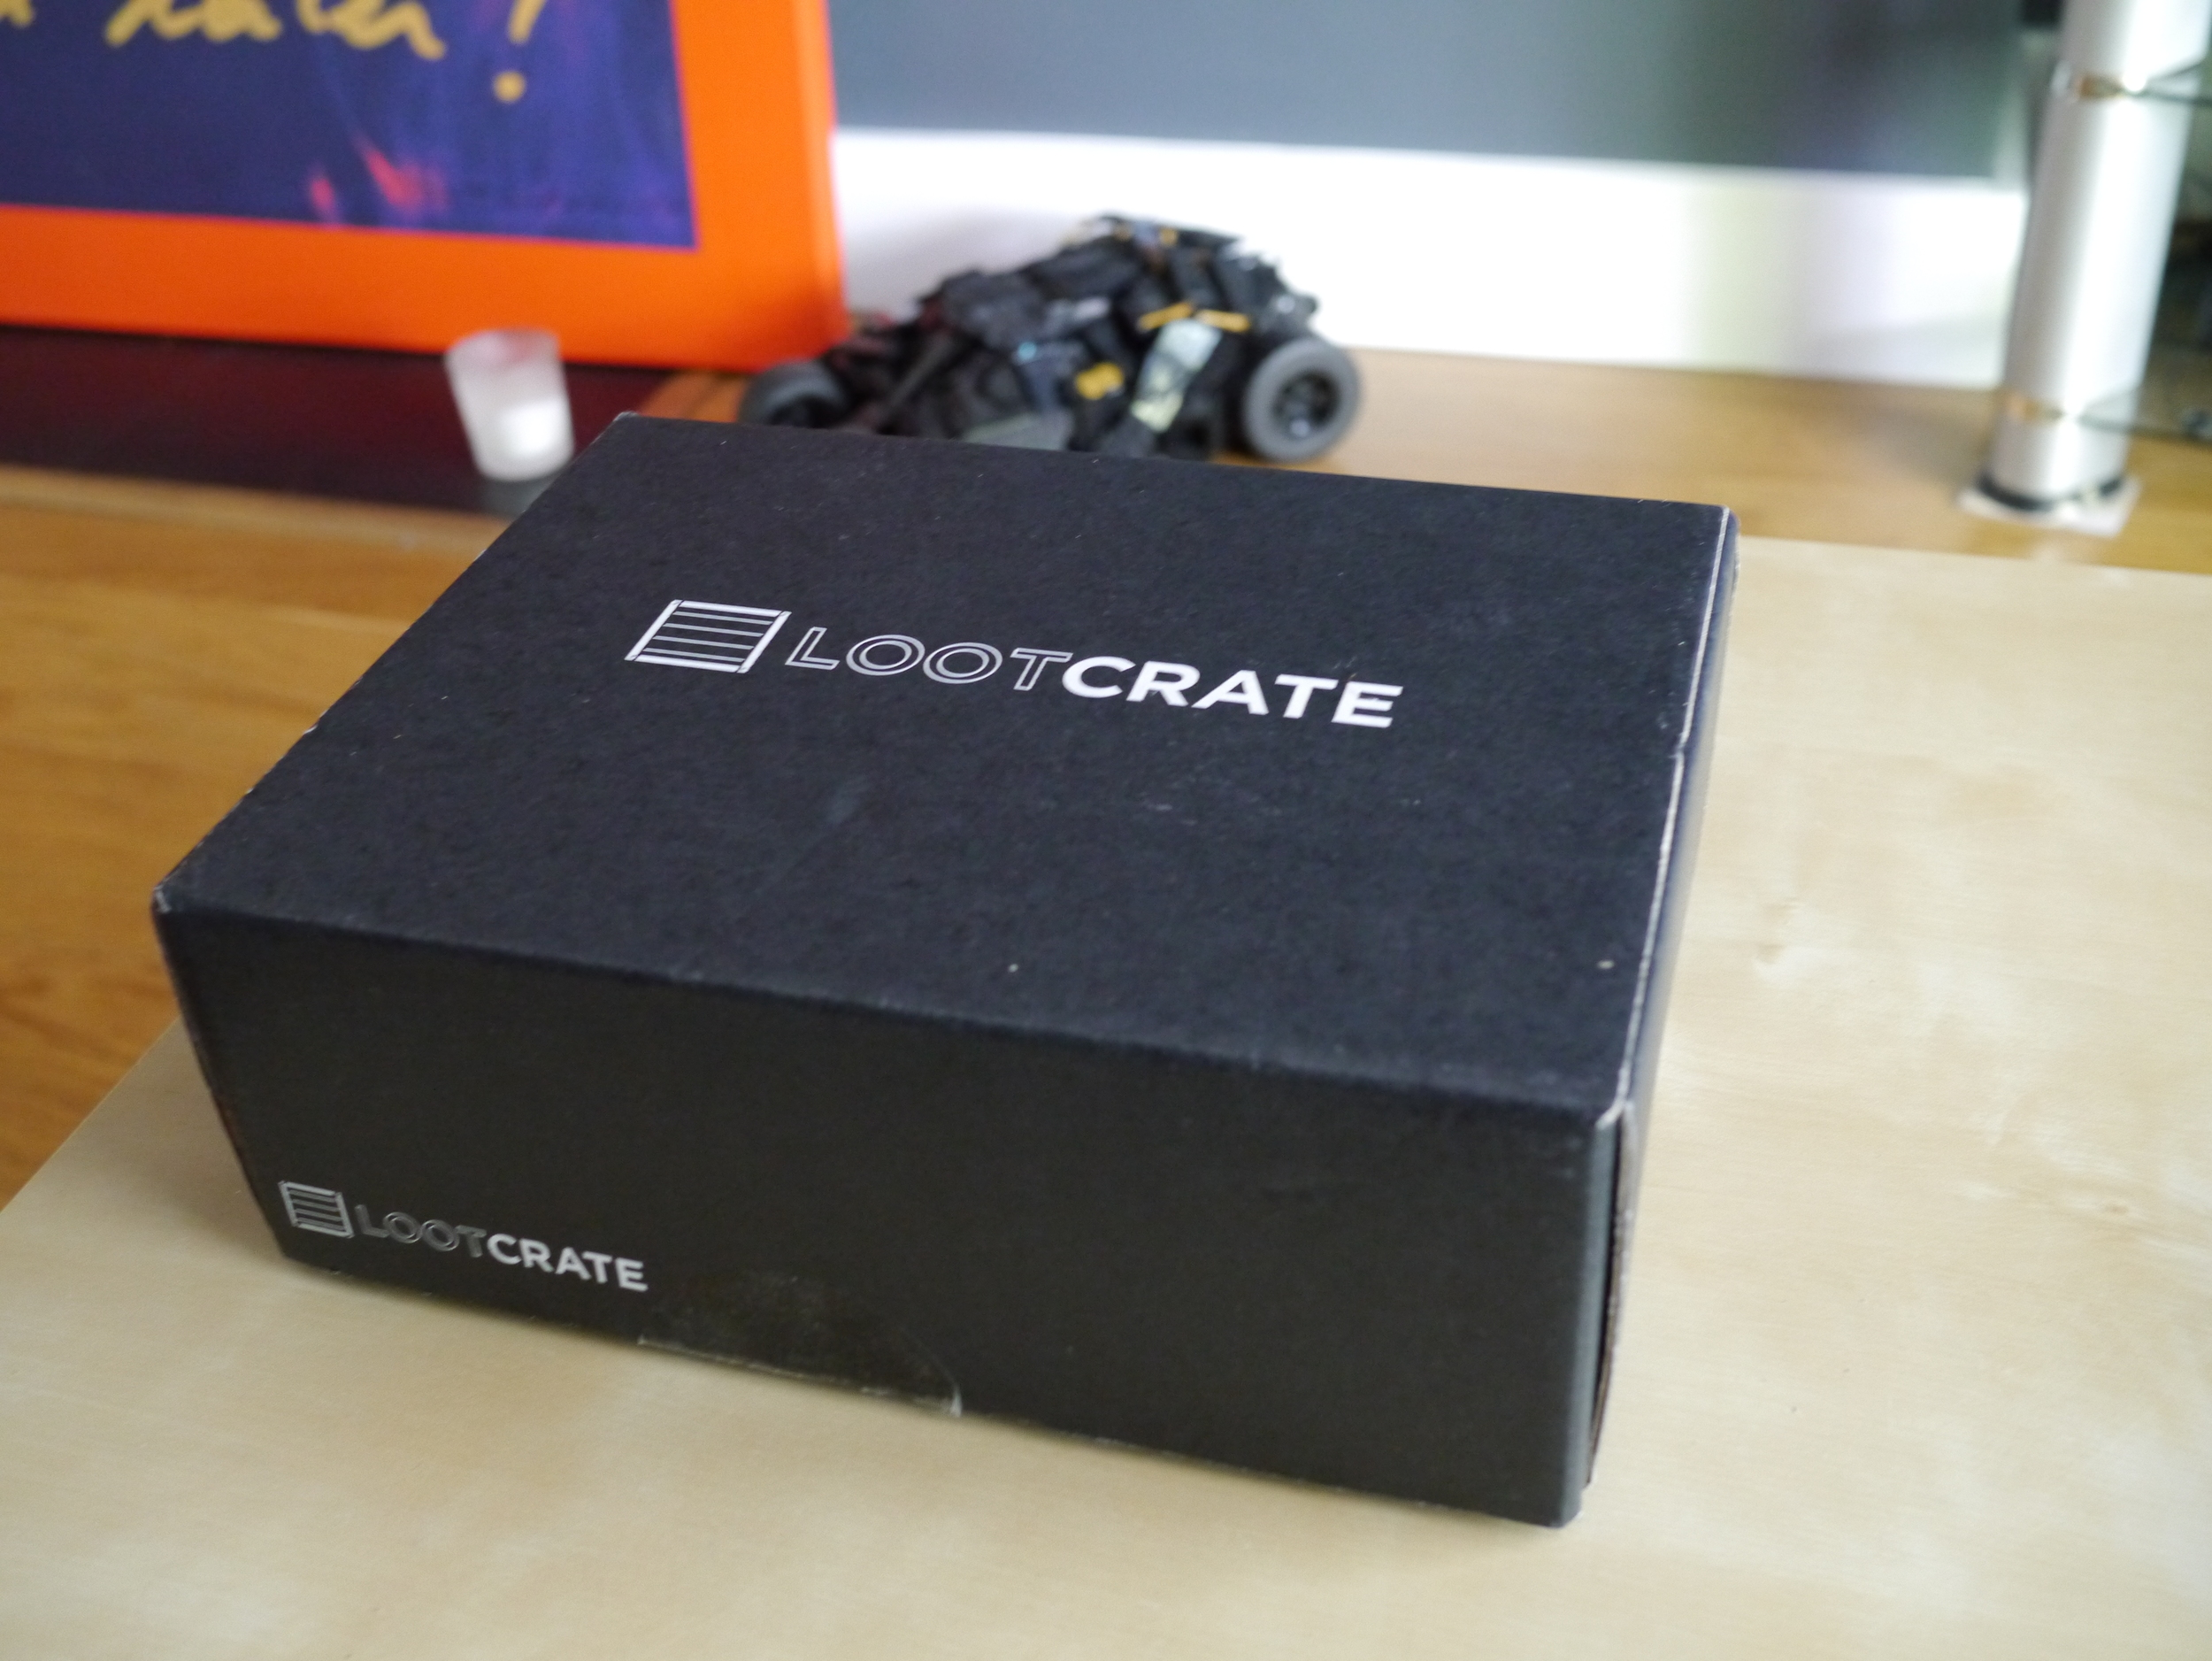 May's Loot Crate